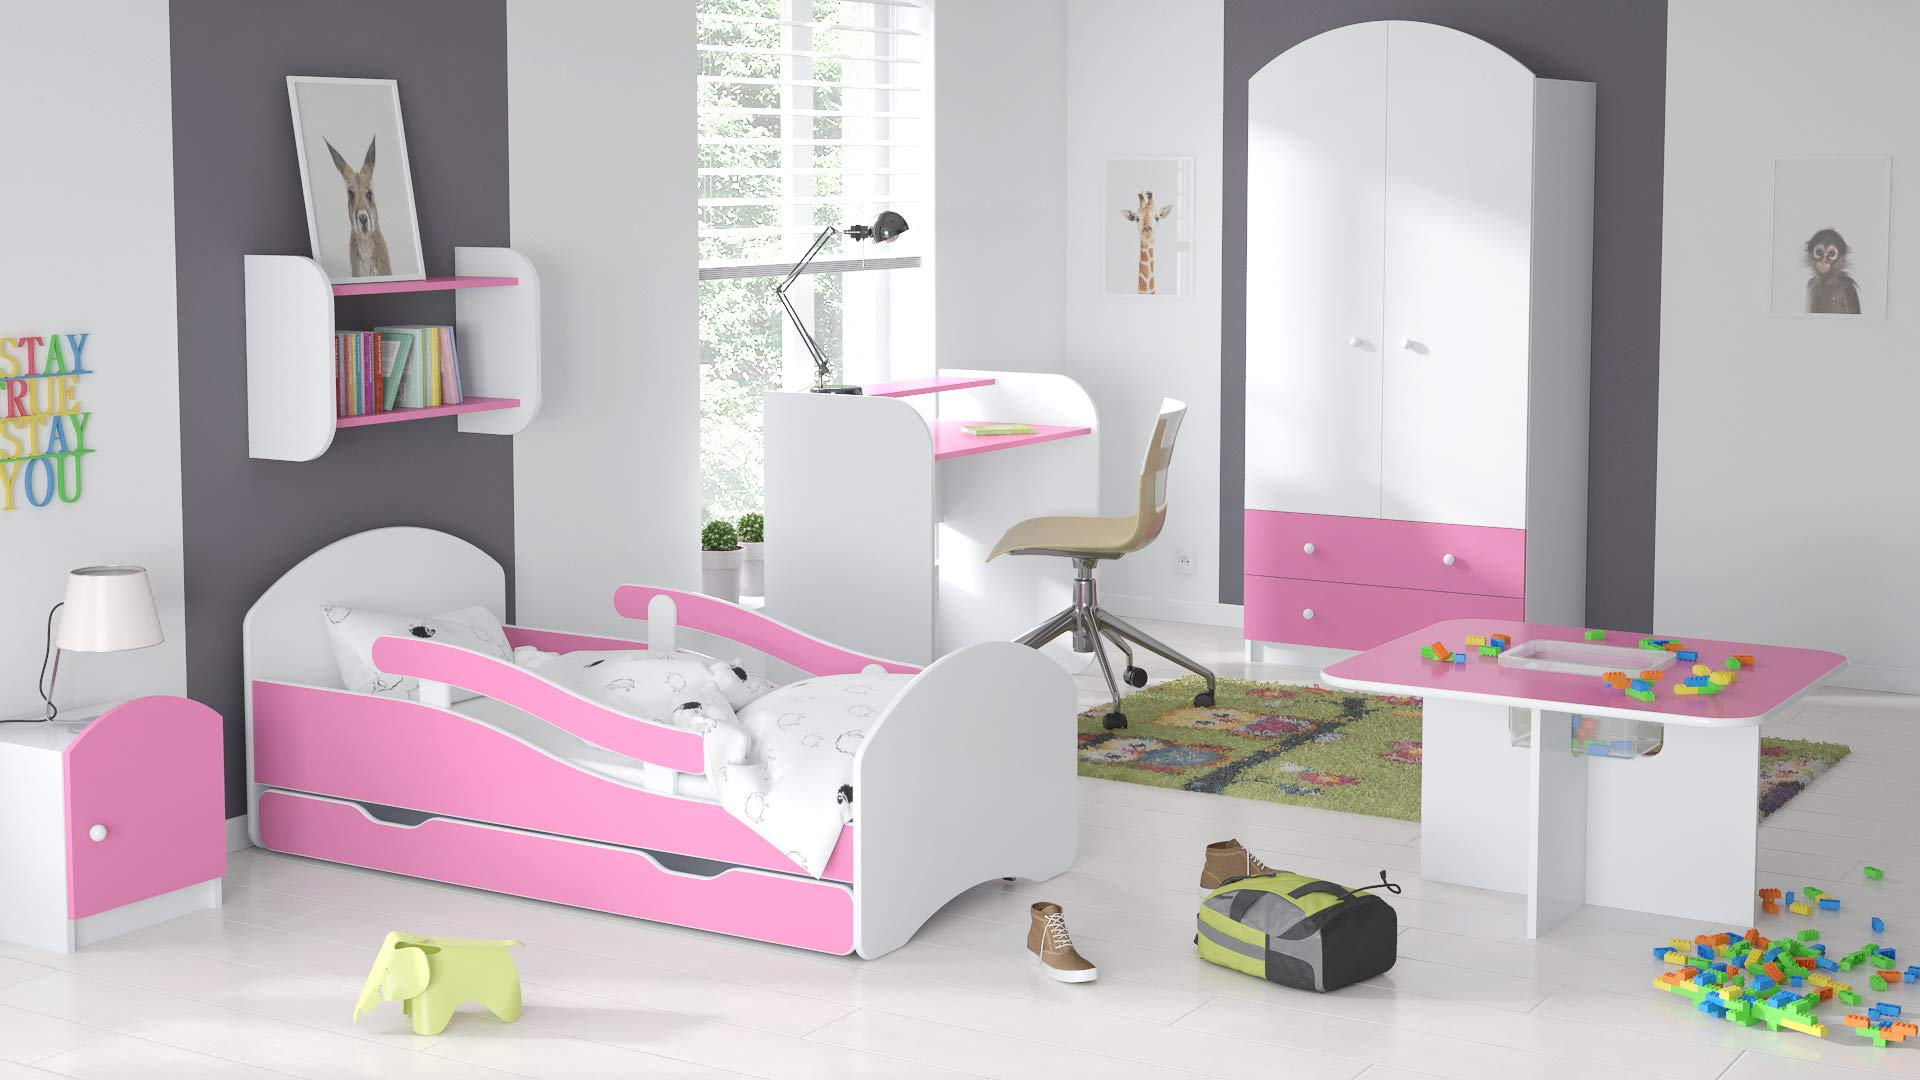 ChildrensBeds Home Single Bed Oscar For Kids Children Toddler Juniors With Drawers But No Mattress Included (White - Pink, 180x80) Children's Beds Home Bed with barriers - internal dimensions 140x70, 160x80, 180x80 (External dimensions: 145x76, 165x86, 185x86) Height to top of the bed frame at lowes point is 27 cm. Bed frame with load capacity of 100 kg, Fittings + installation instructions Universal bed entrance - right or left side, front barriers can be easily removed during the day and put back at night 2